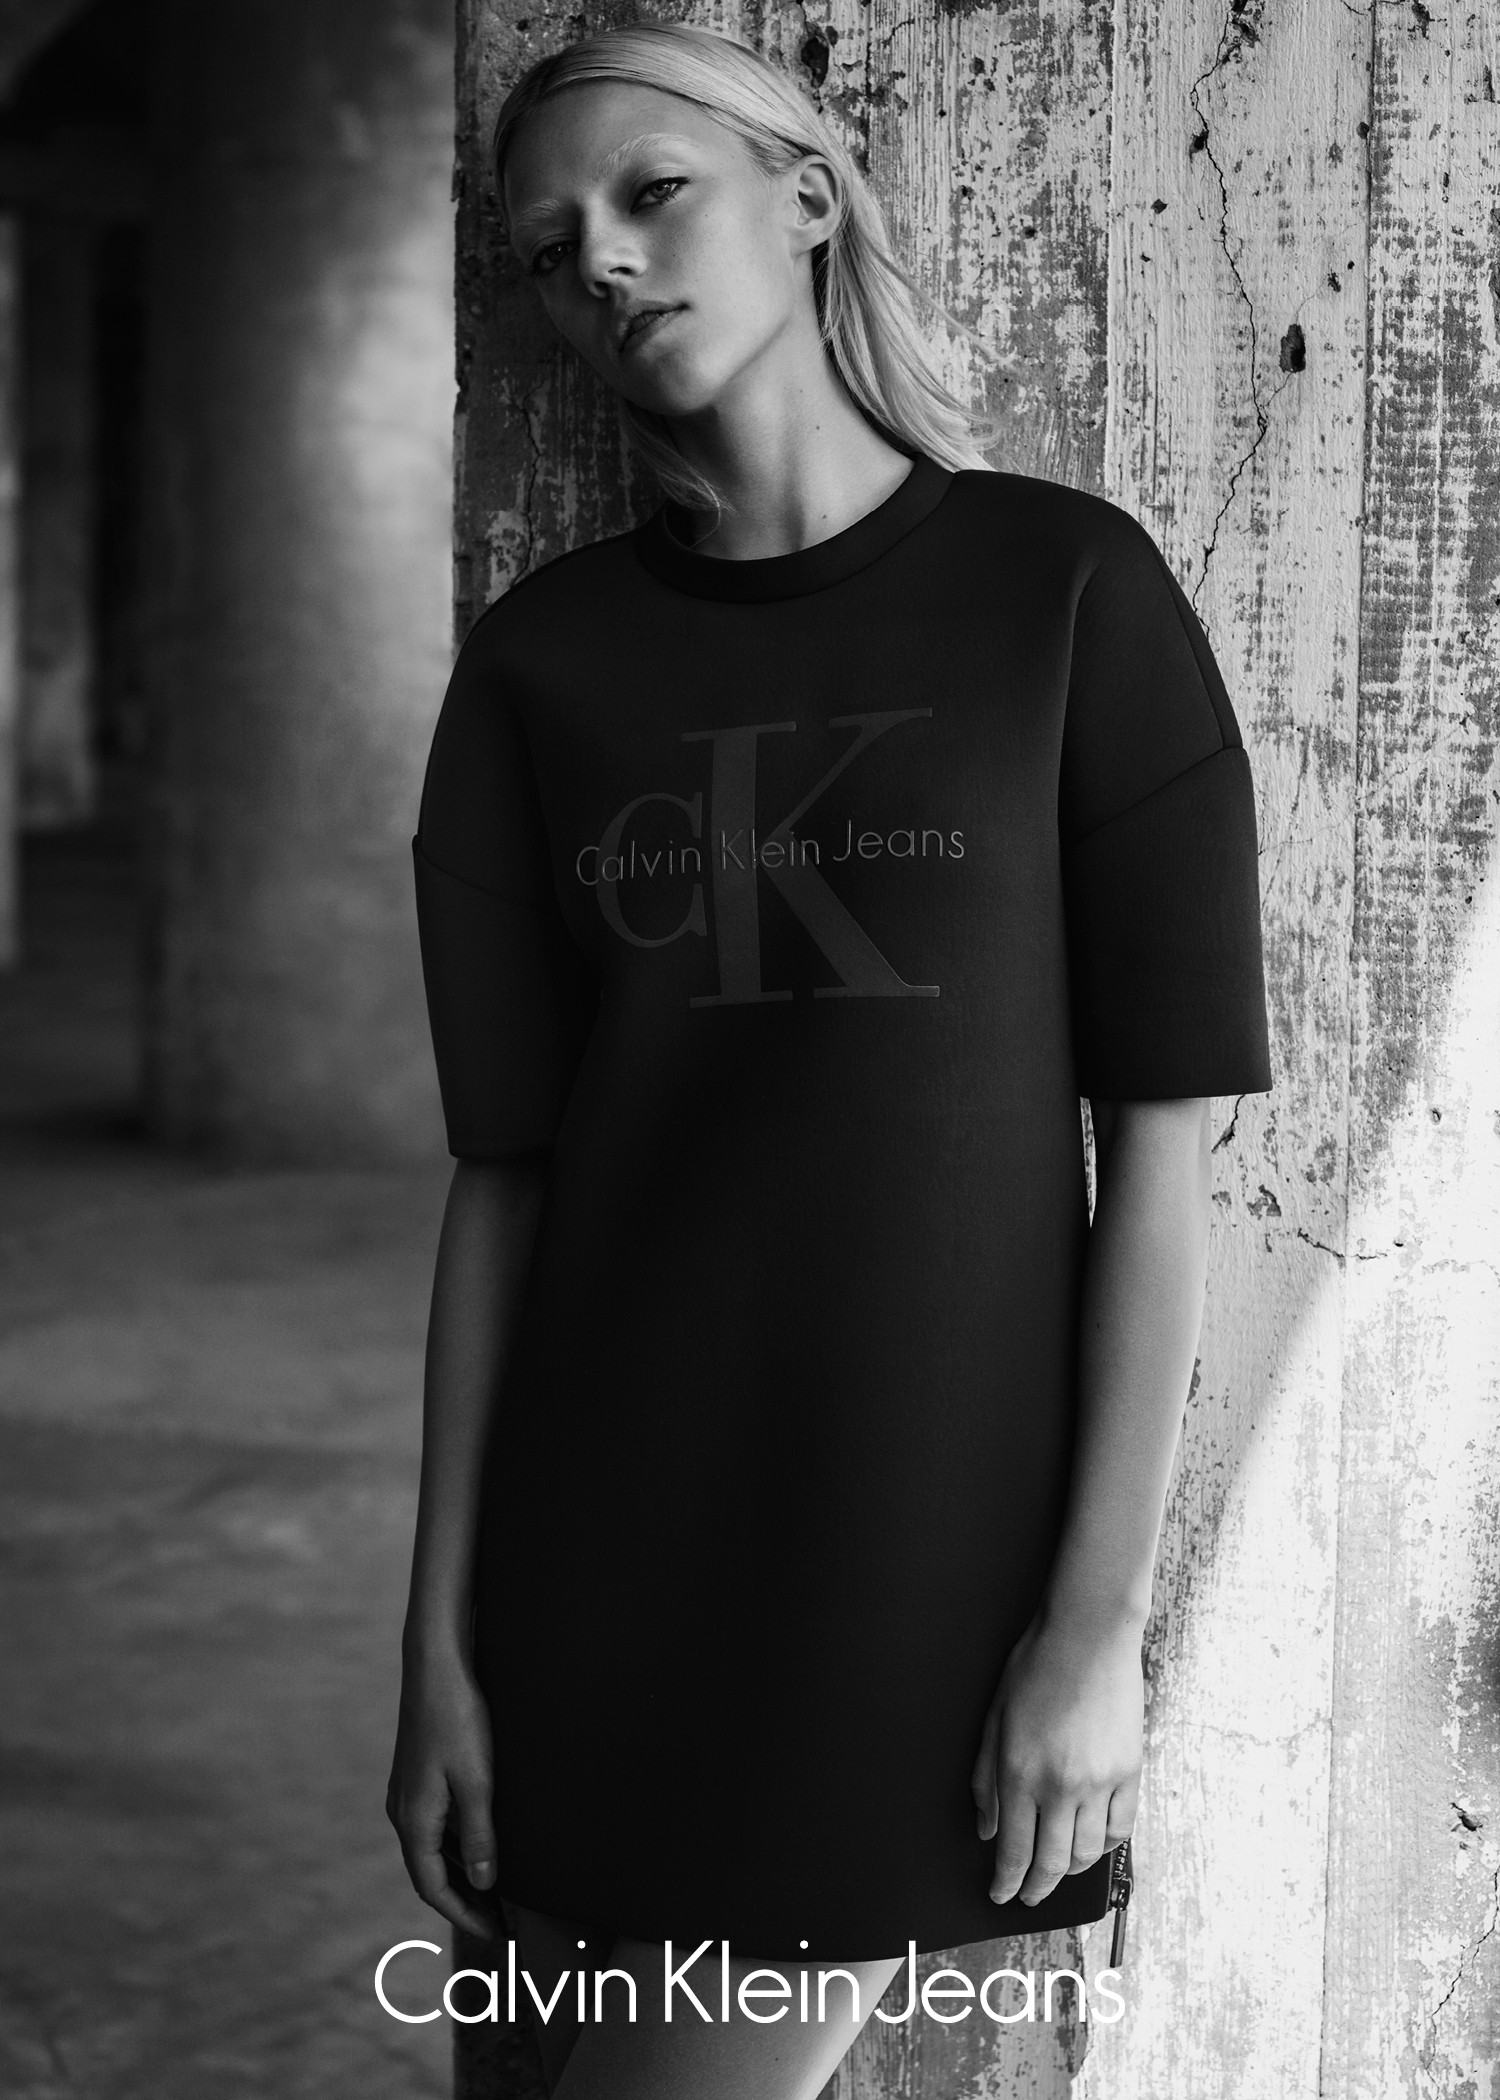 Calvin Klein Jeans Black Series Limited Edition campaign featuring Lucky Blue Smith and Pyper America Smith.